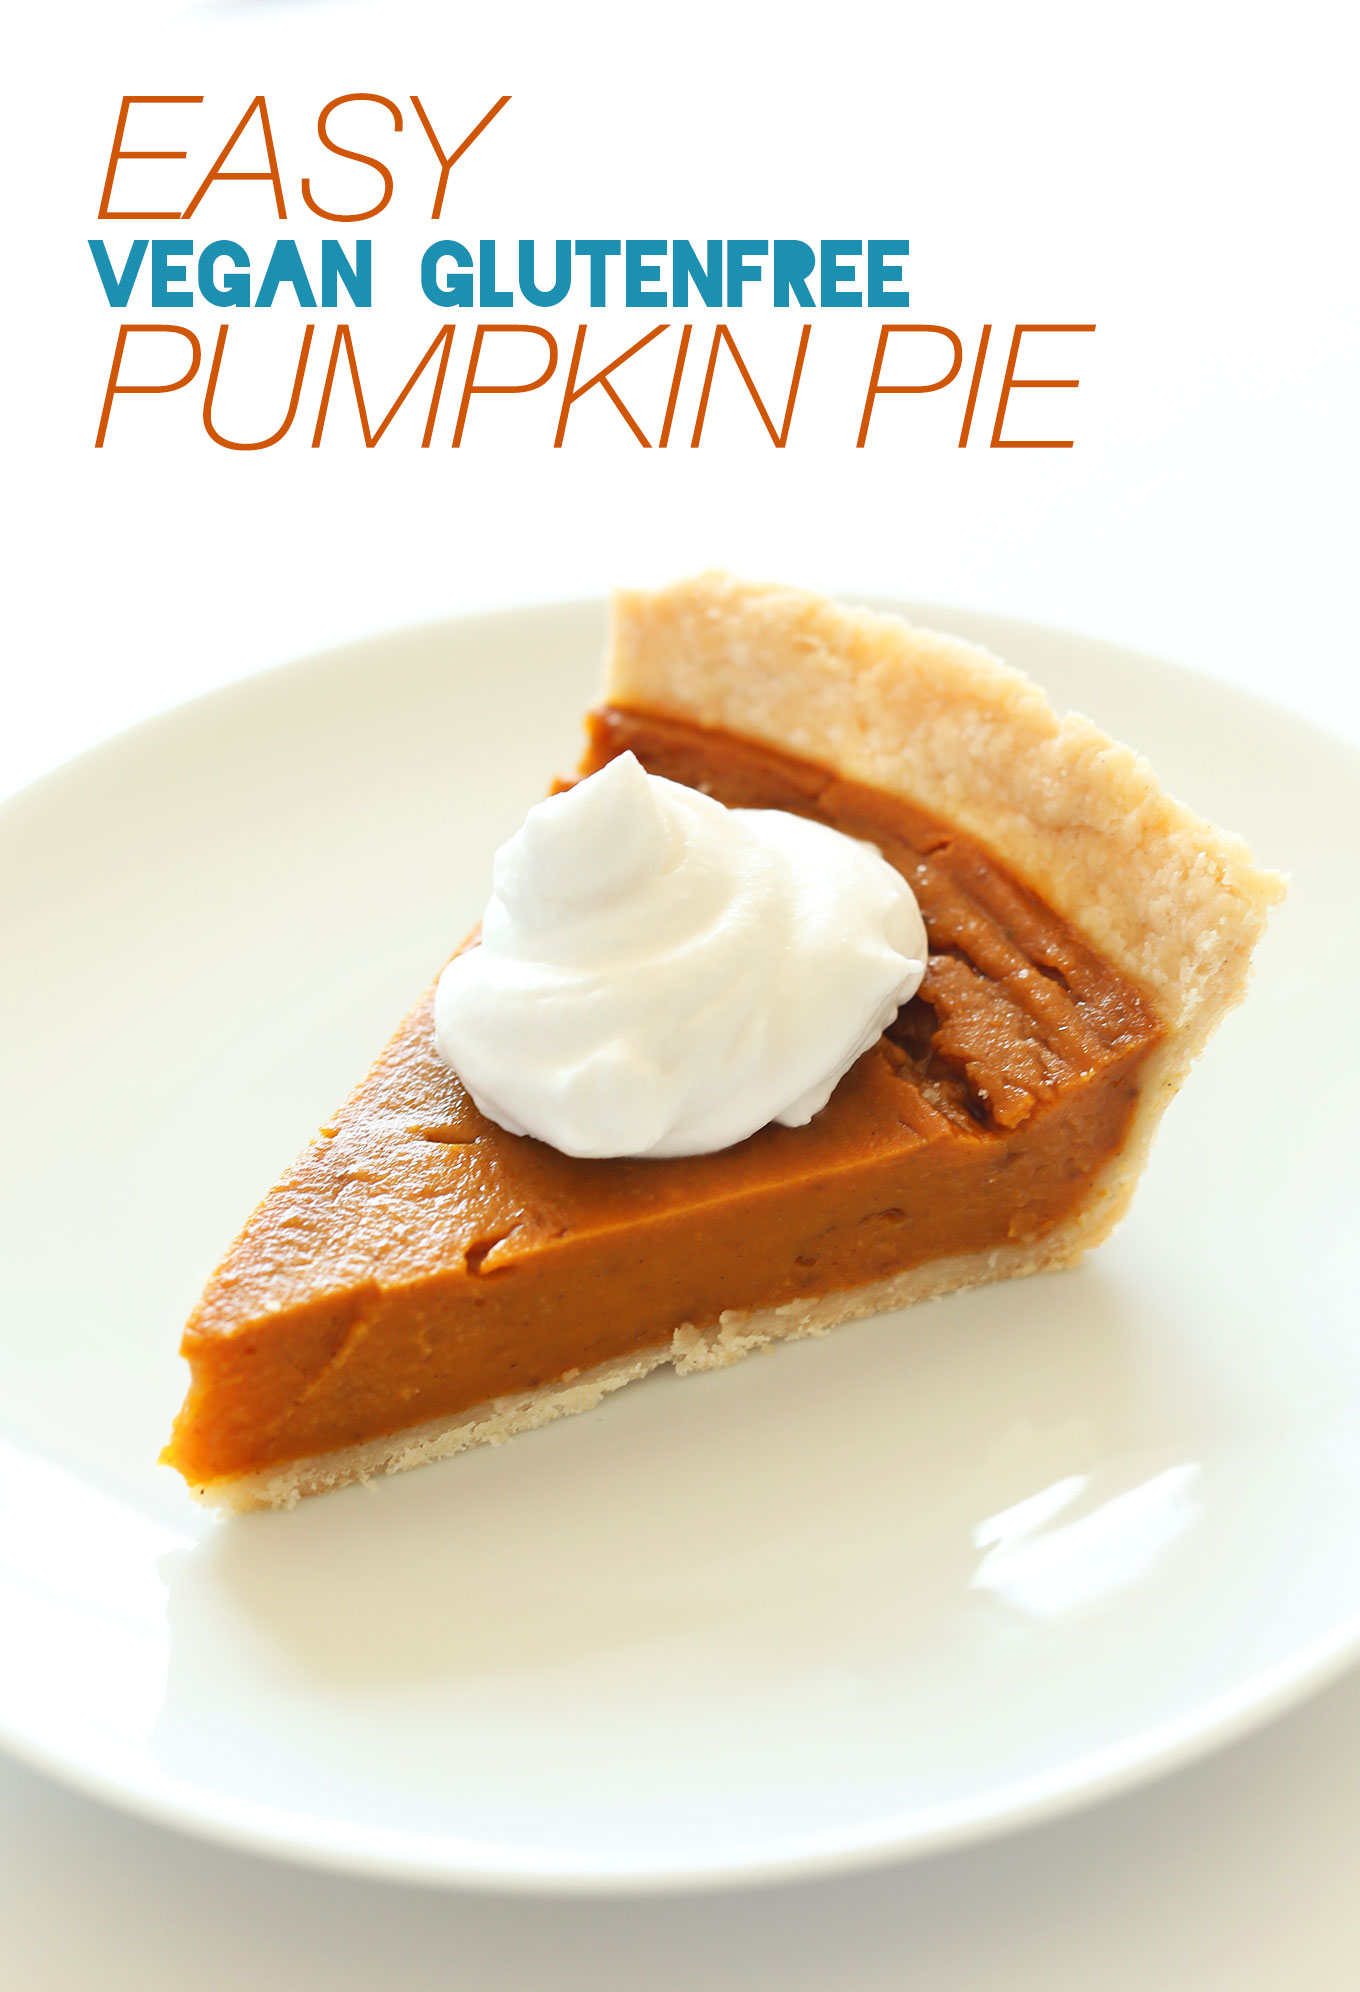 Plate of vegan gluten-free pumpkin pie with a dollop of coconut whipped cream